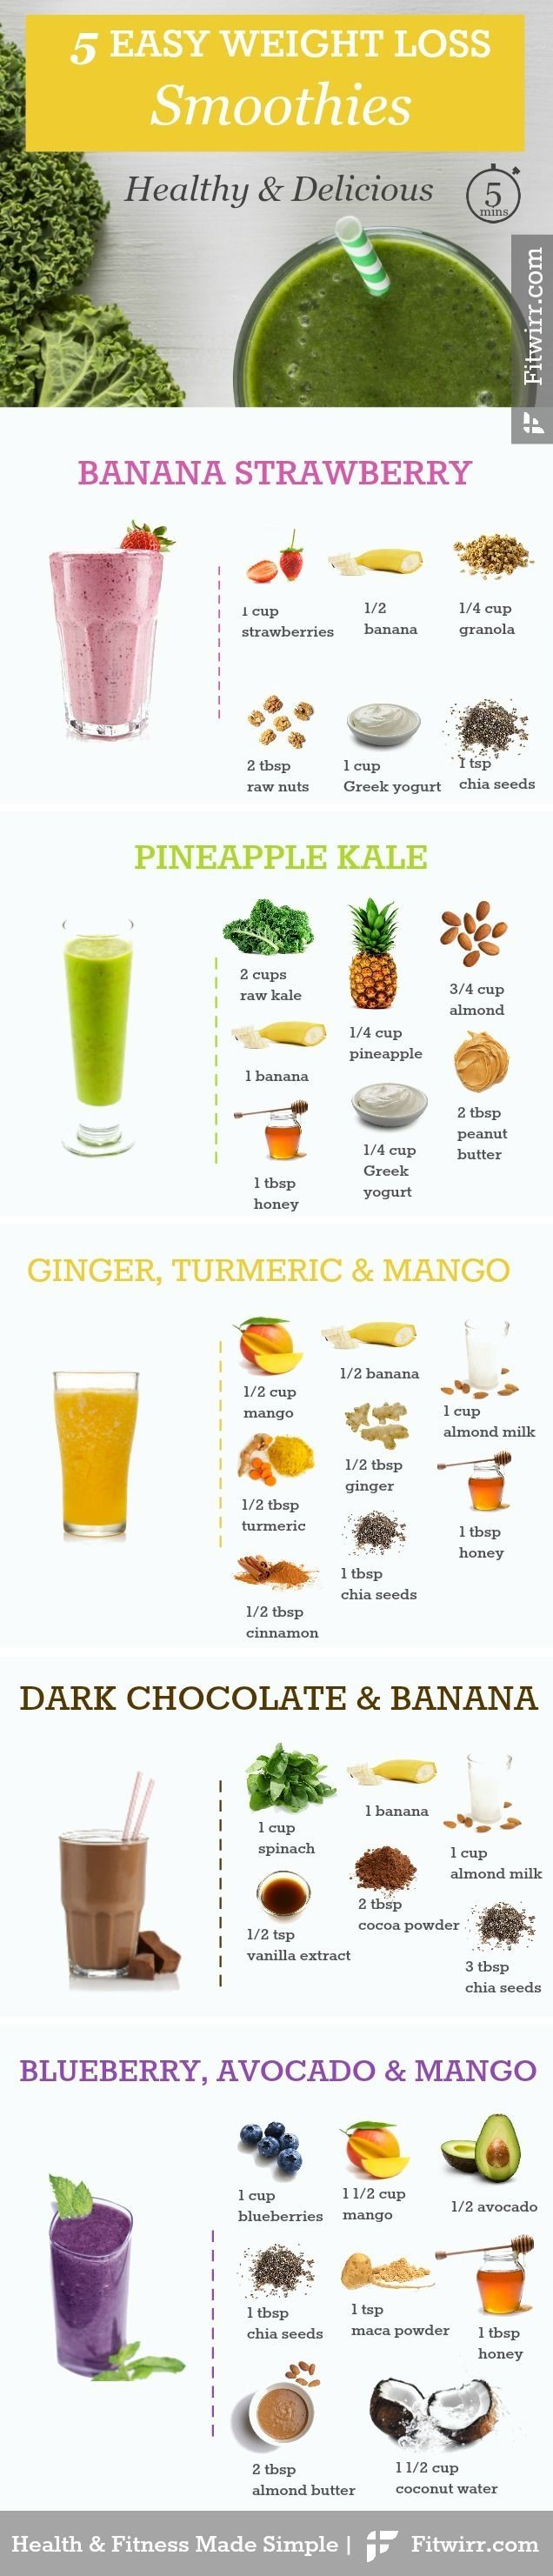 Healthy green smoothies for weight loss. #smoothie #weightloss #weightlossmotivationbeforeandafter